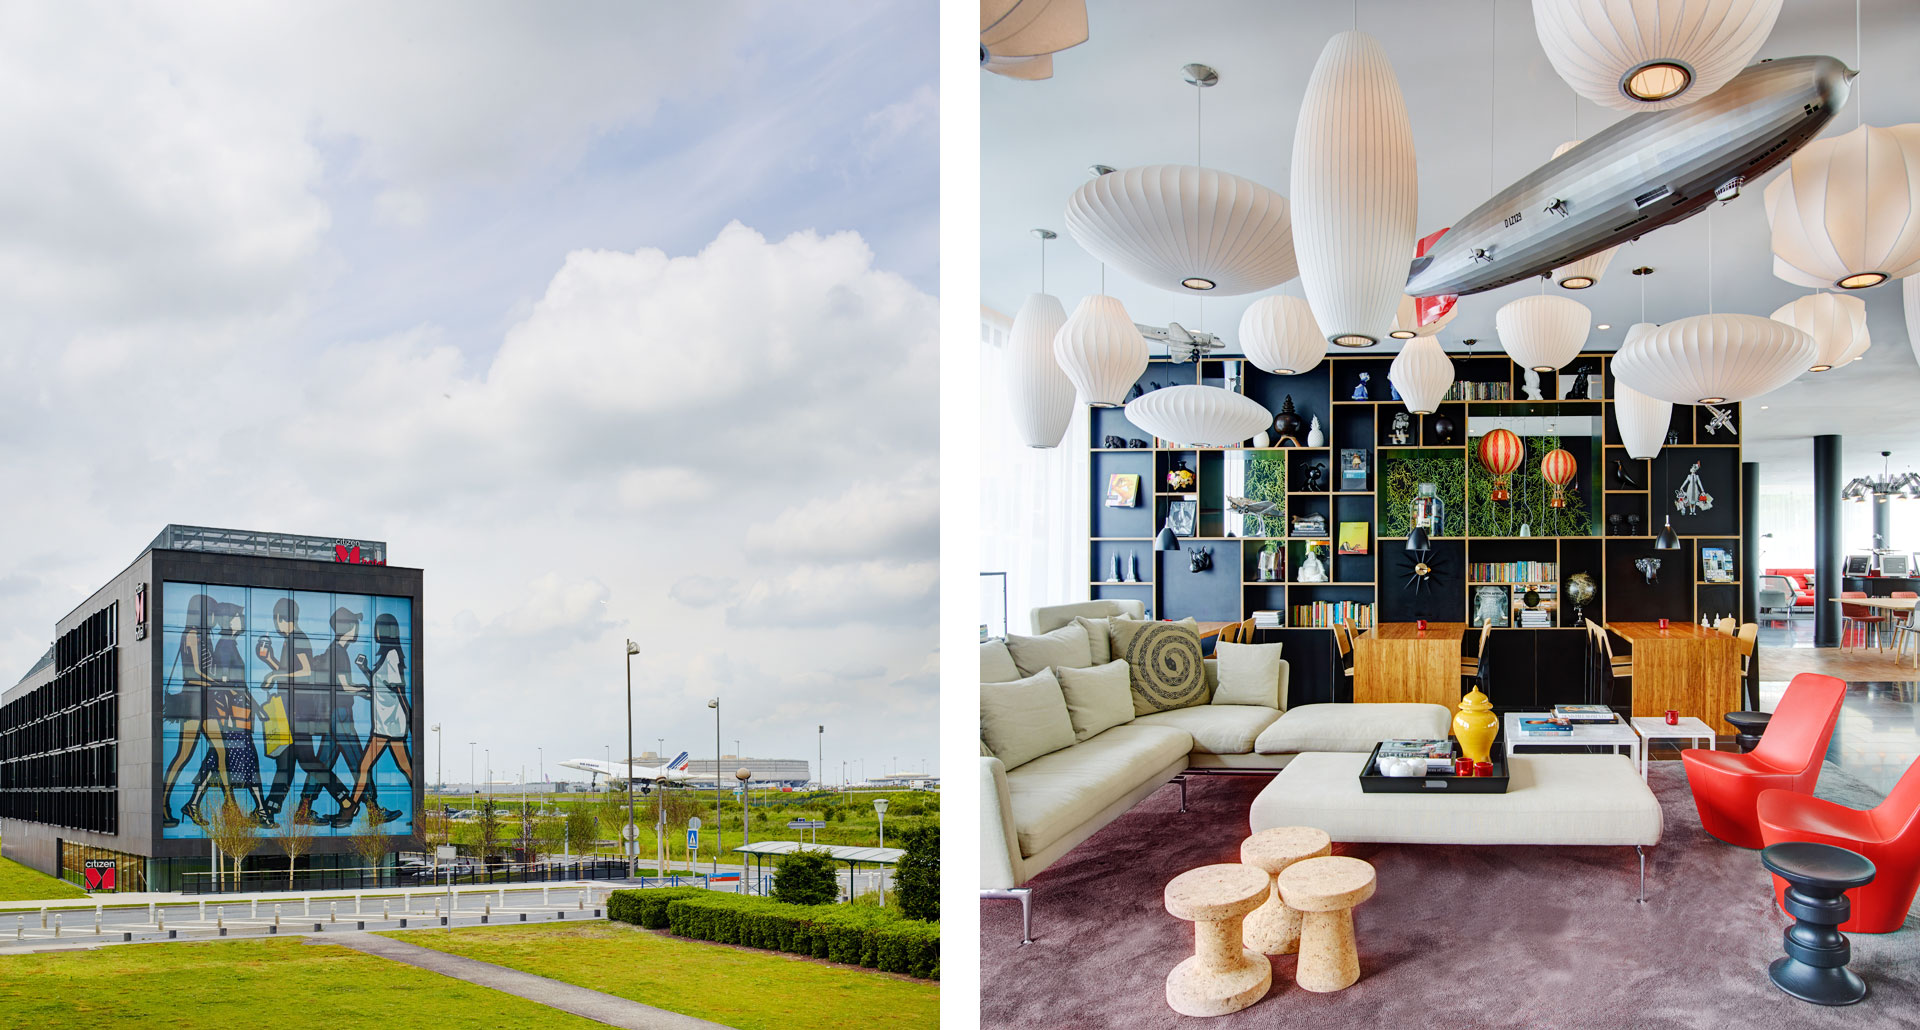 CitizenM — Charles de Gaulle Airport - boutique hotel in Paris